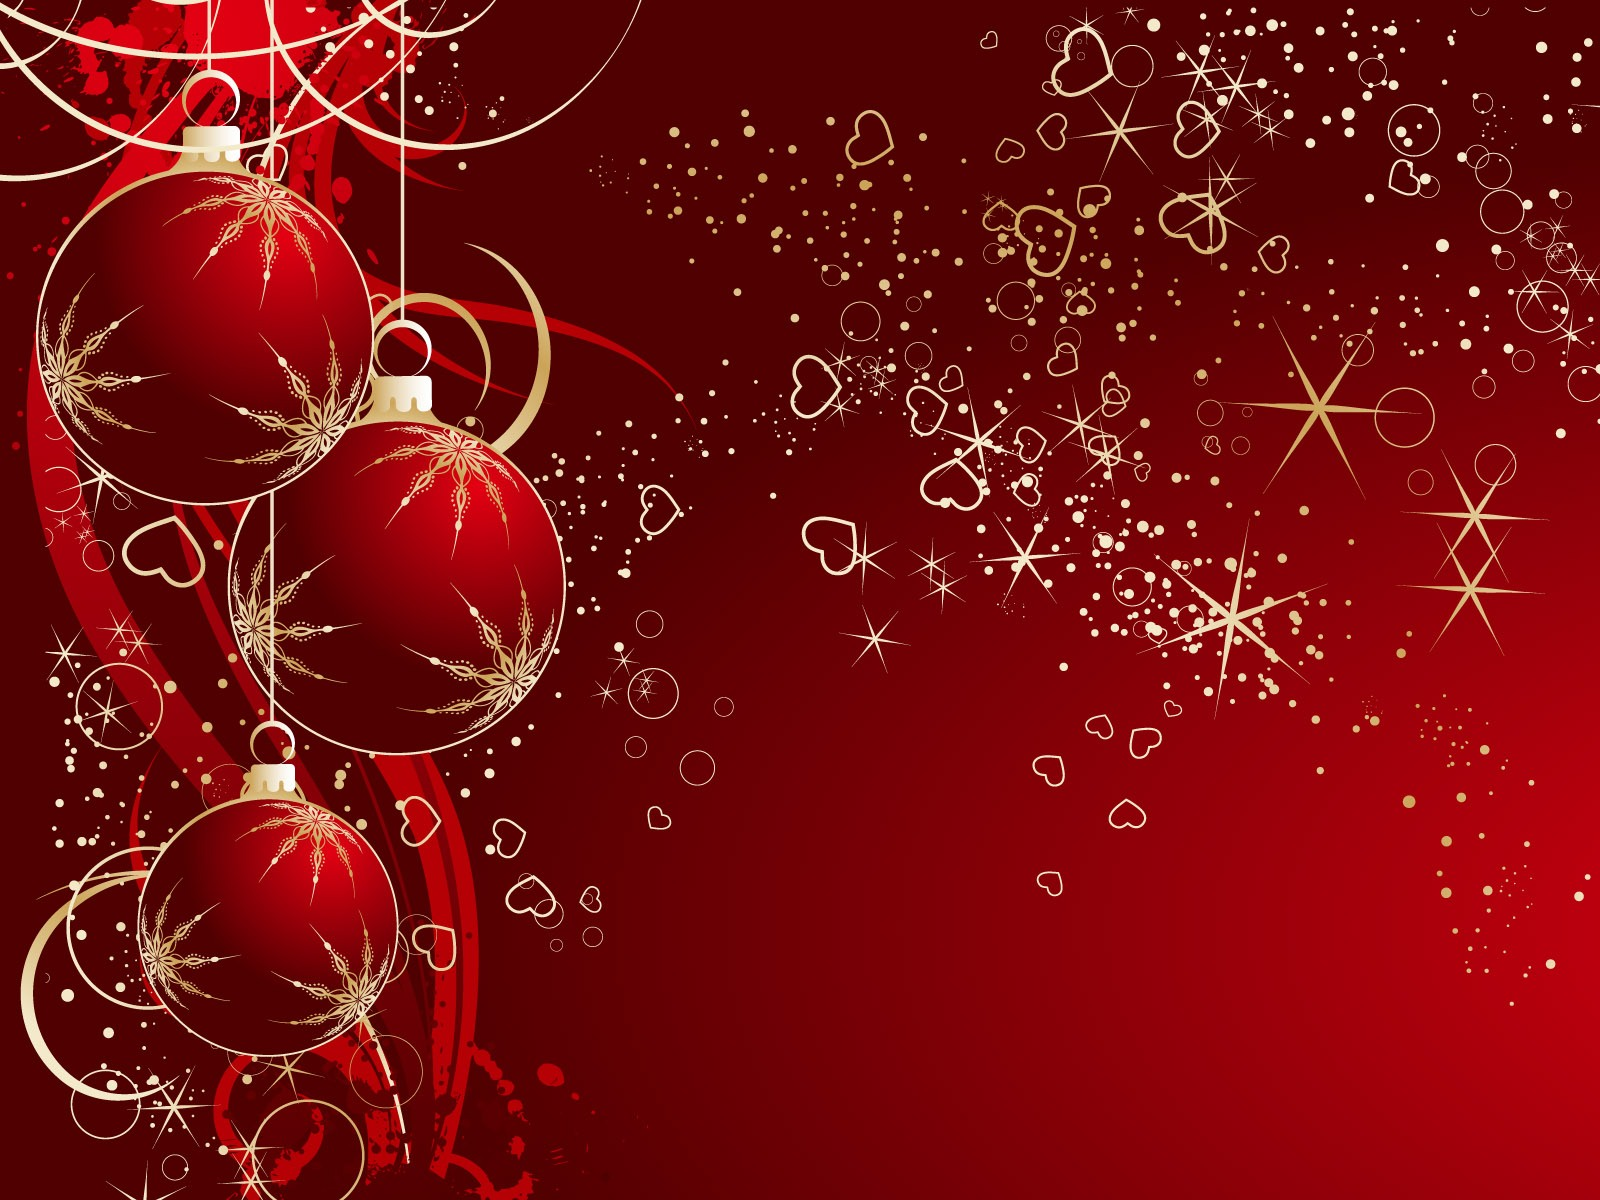 Christmas Background Red Christmas Backgrounds Red Christmas 1600x1200